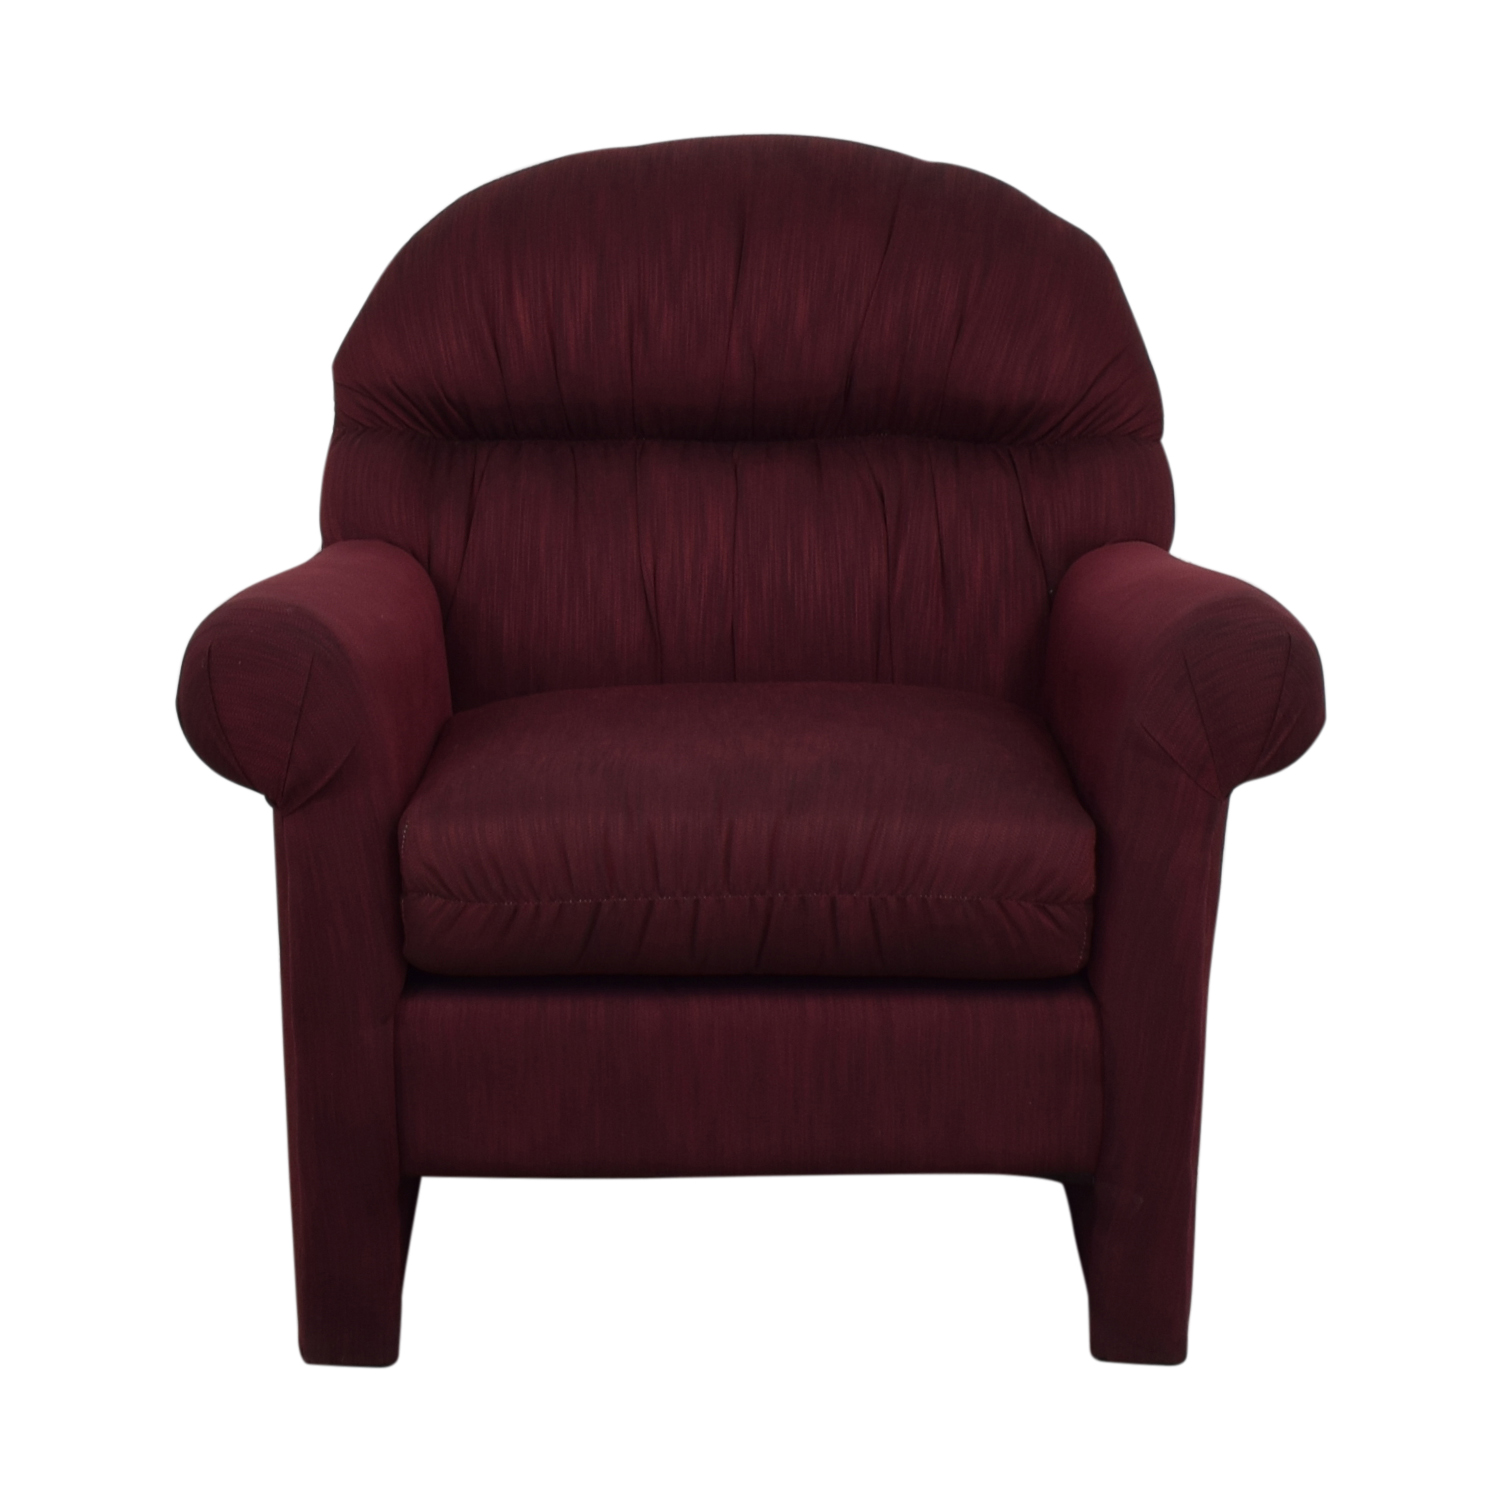 Jennifer Furniture Burgundy Accent Chair / Accent Chairs